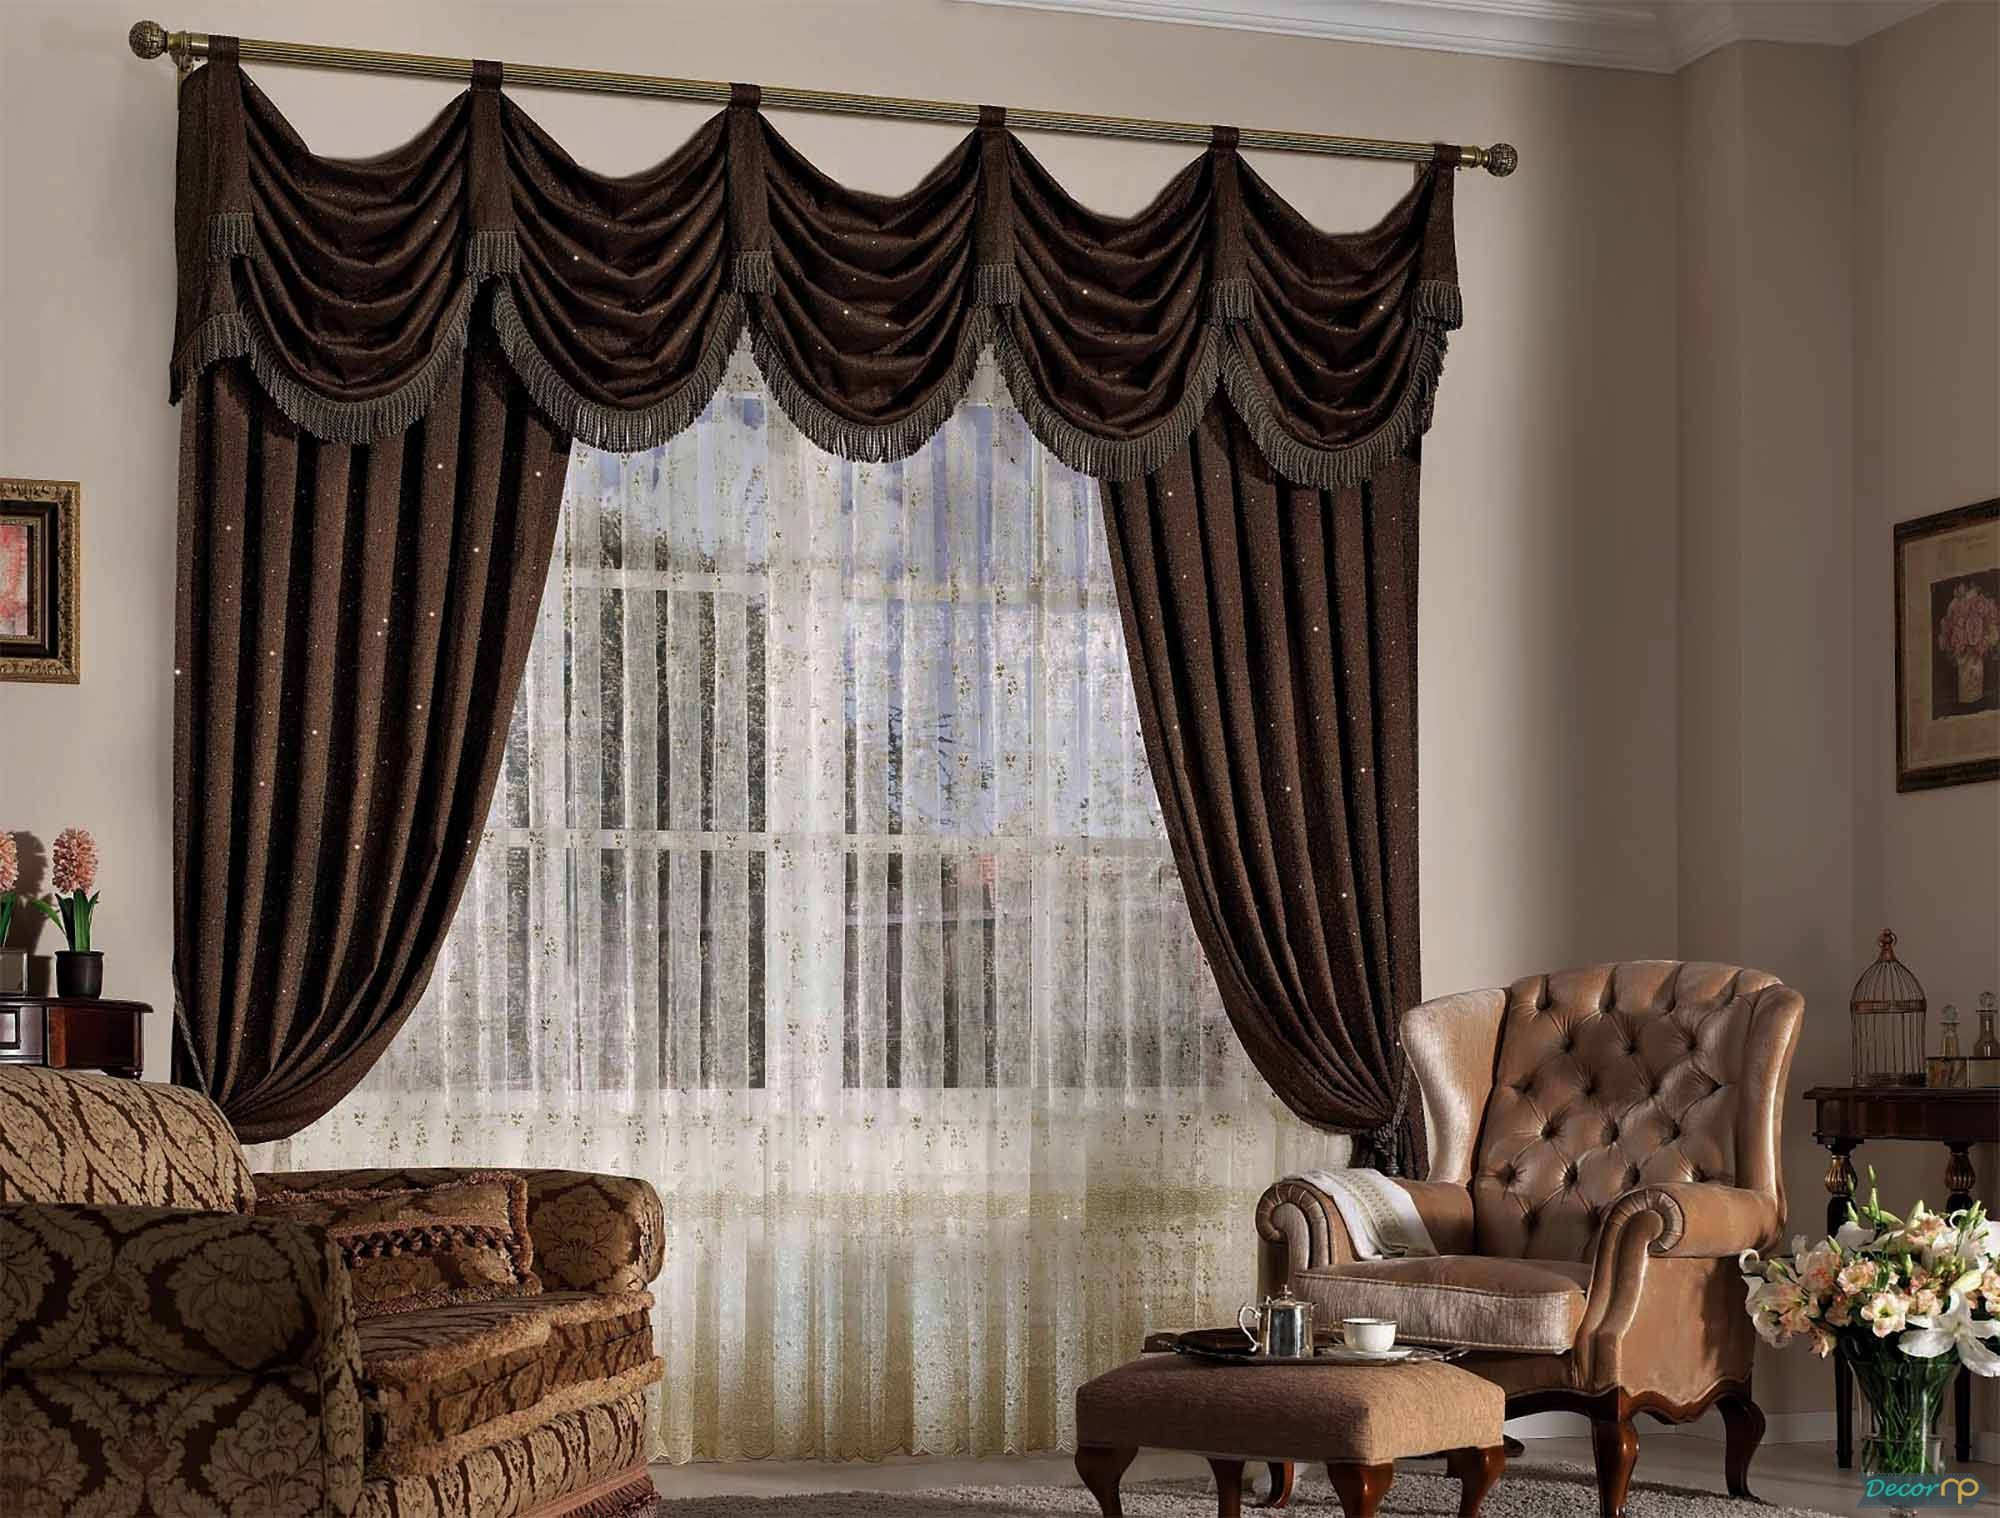 Make Your Home Stylish Furnishings And Curtains